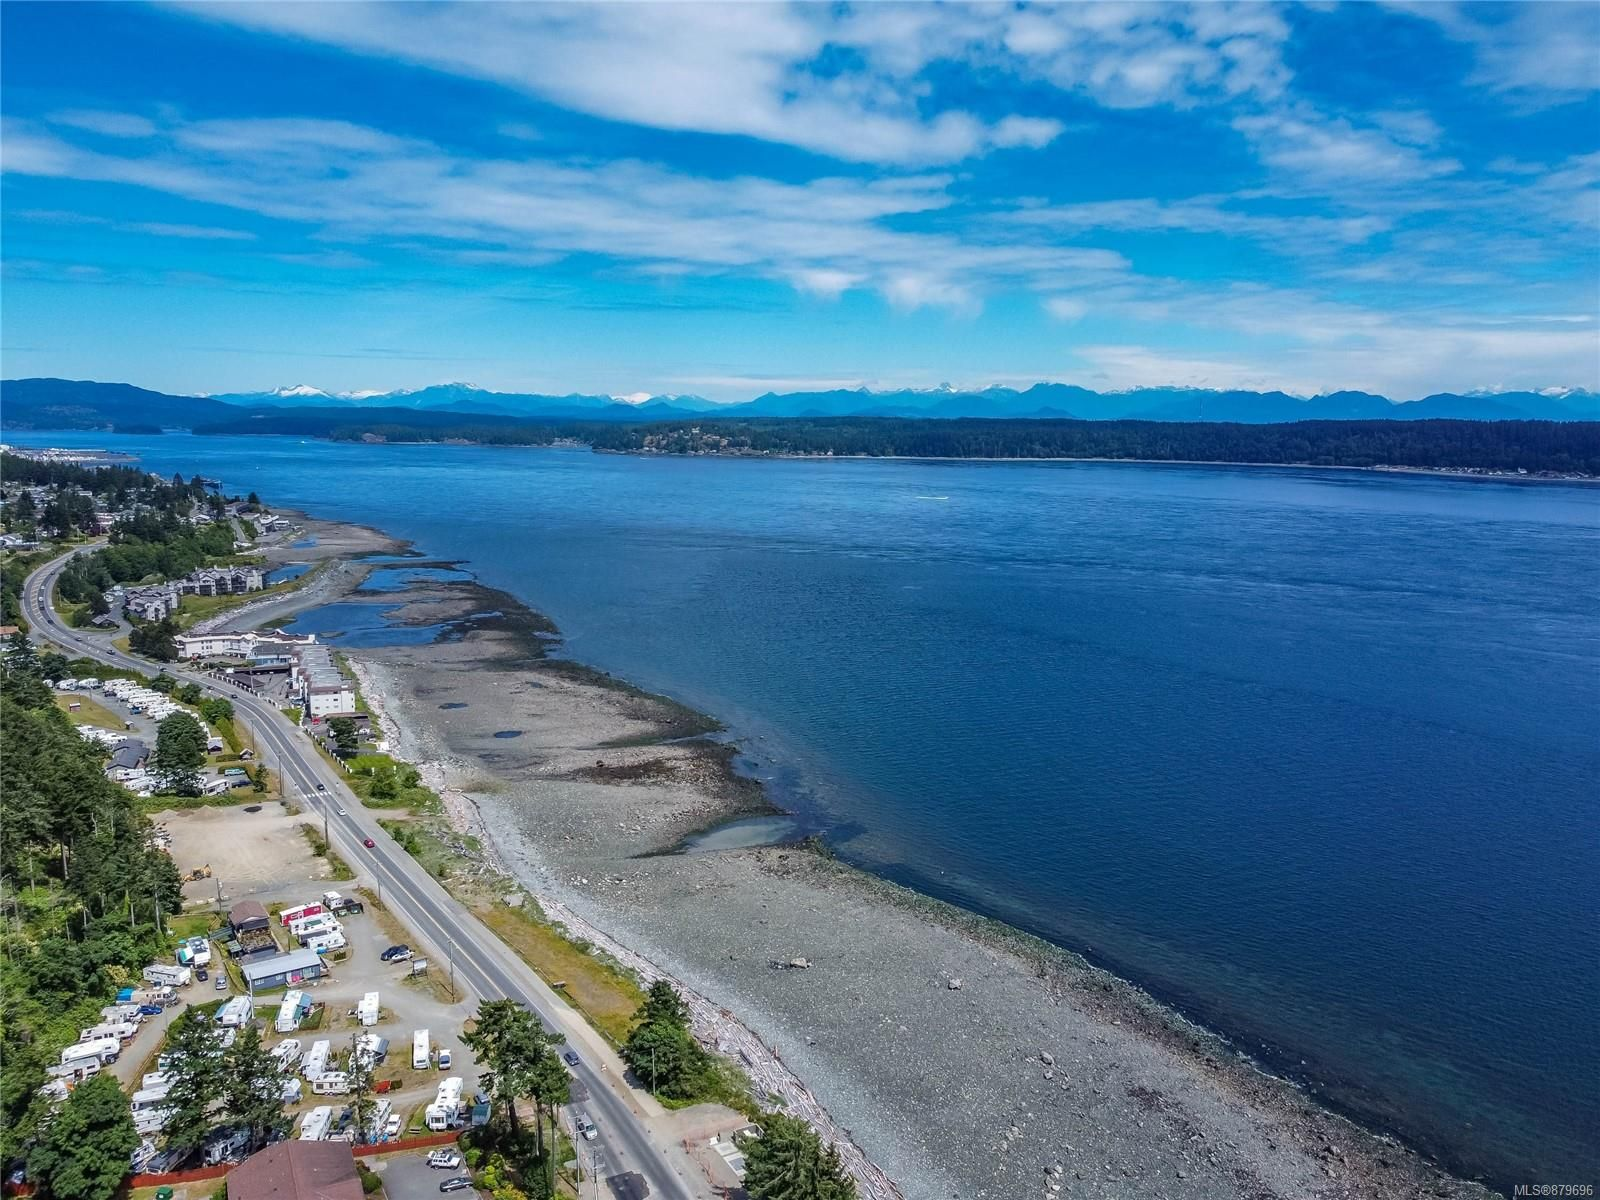 Photo 28: Photos: 219 390 S Island Hwy in : CR Campbell River West Condo for sale (Campbell River)  : MLS®# 879696